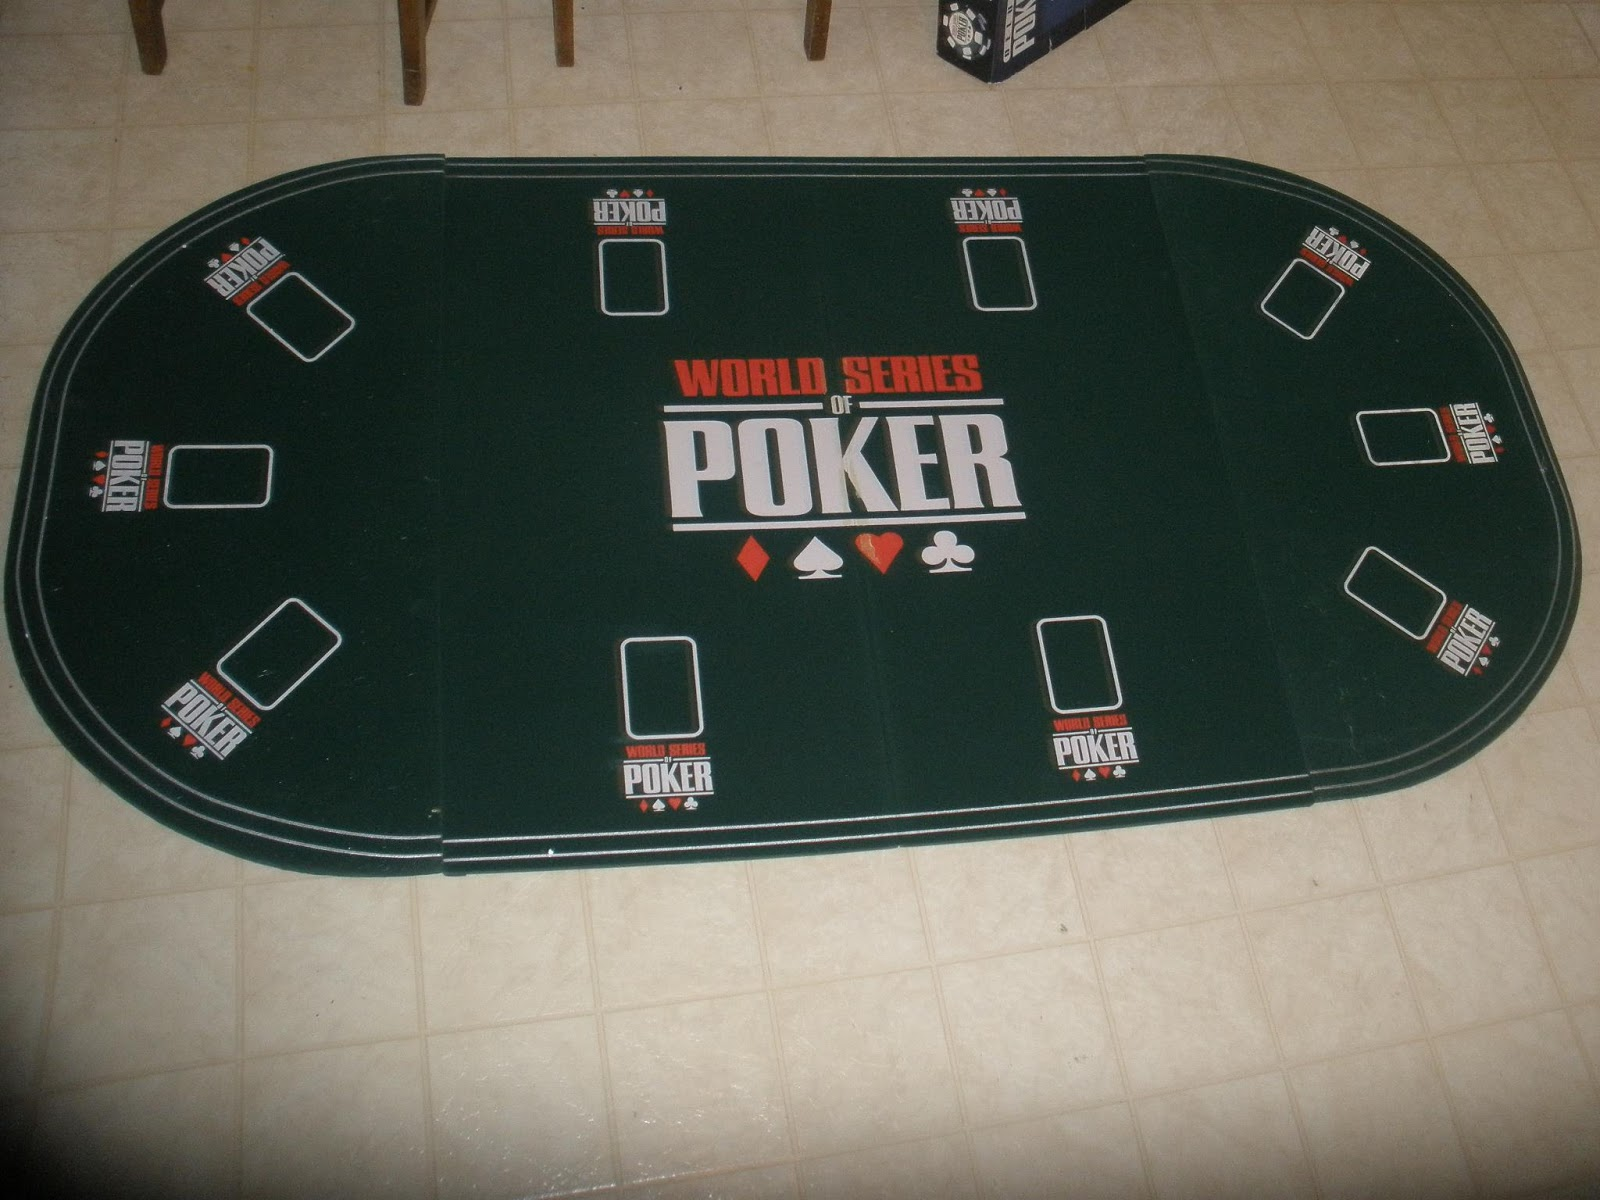 Delicieux Poker Tabletop Good For Up To 10 People! Includes Cards And Chips!